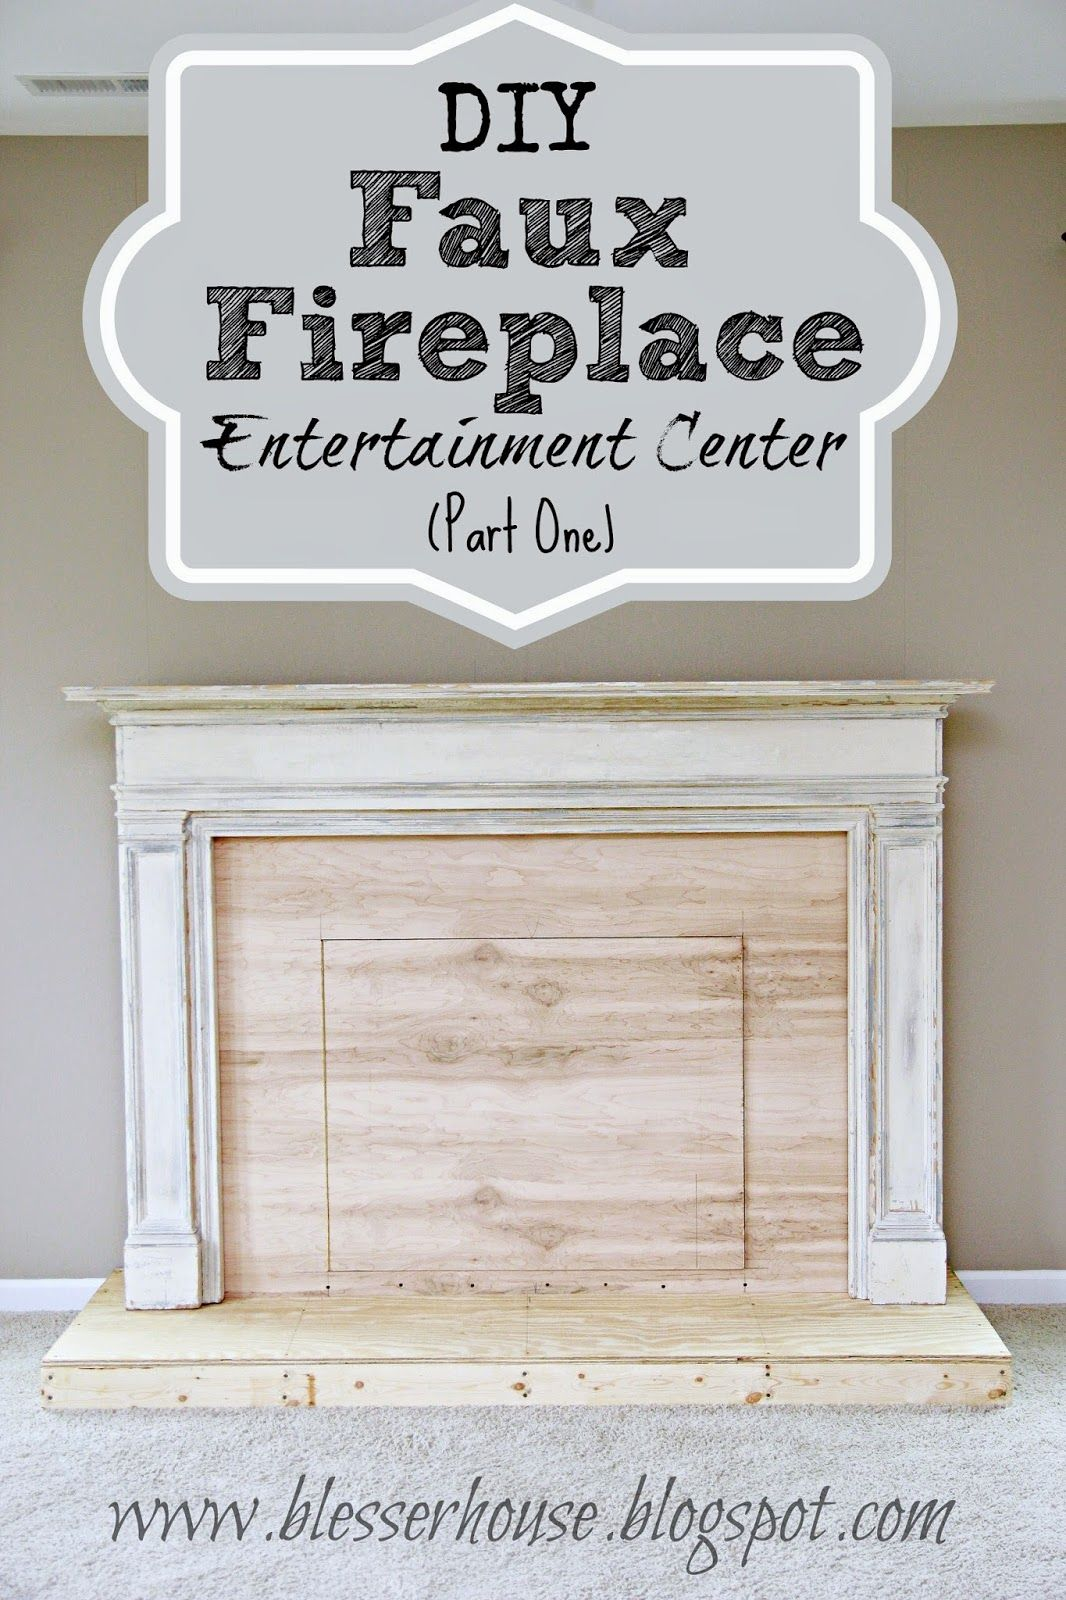 Diy faux fireplace entertainment center part one progress to